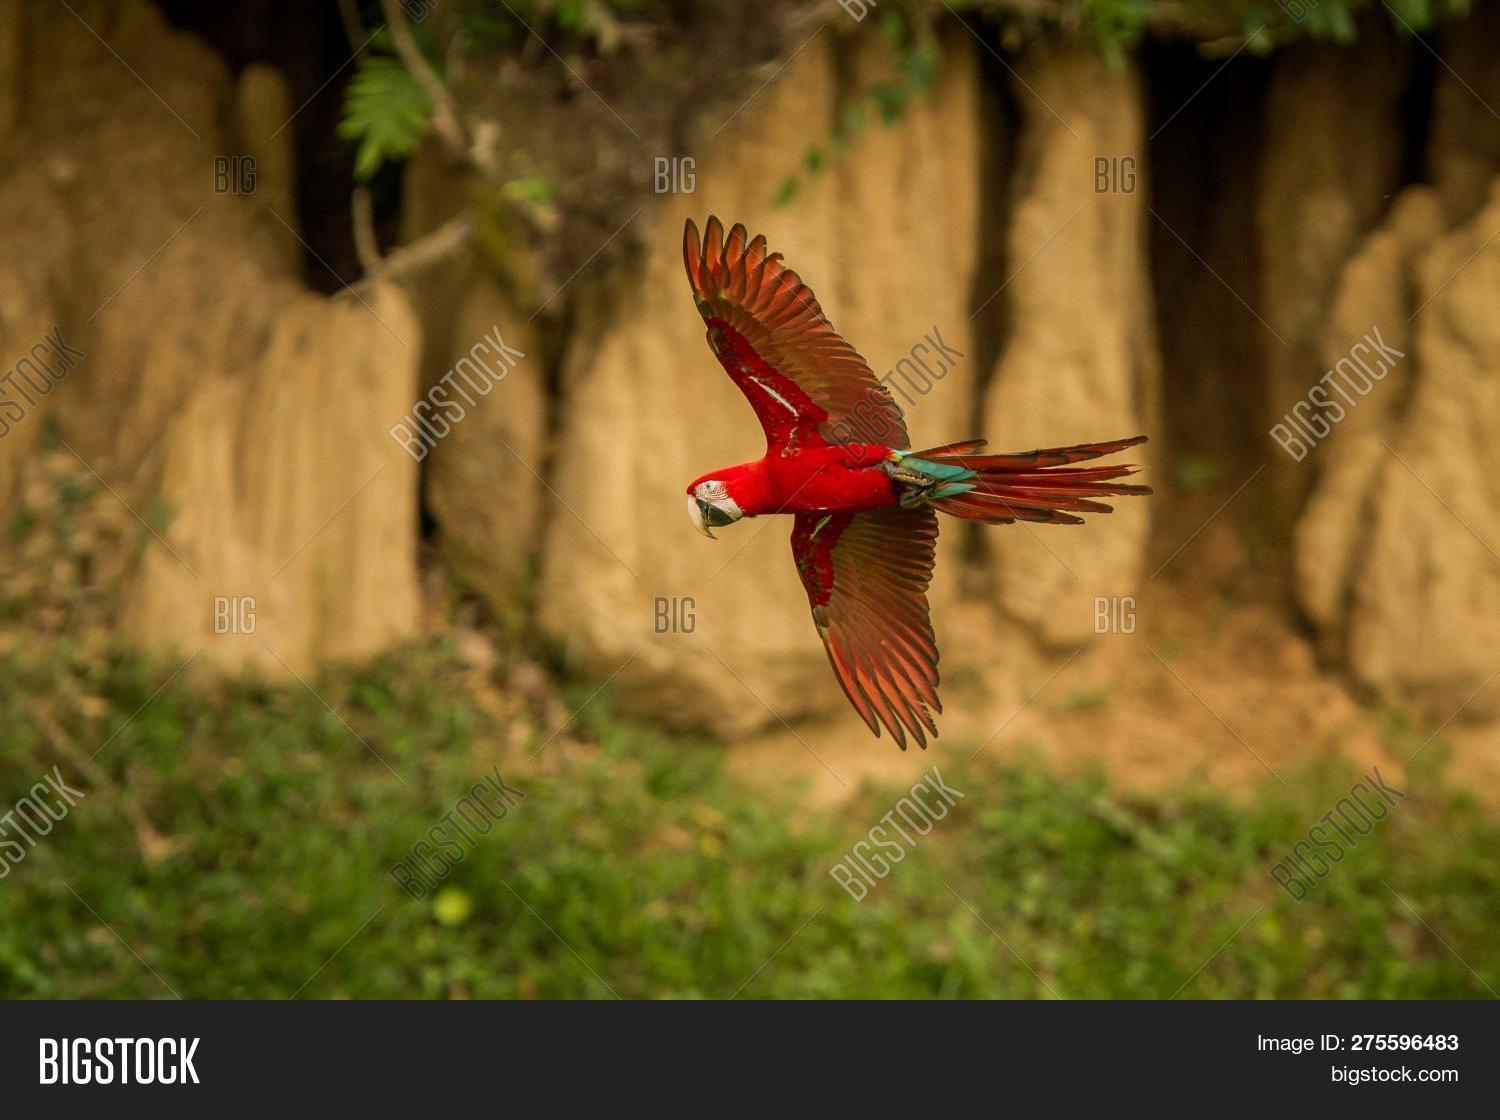 Macaw Flying, Green Vegetation And Brown Clay Lick In Background